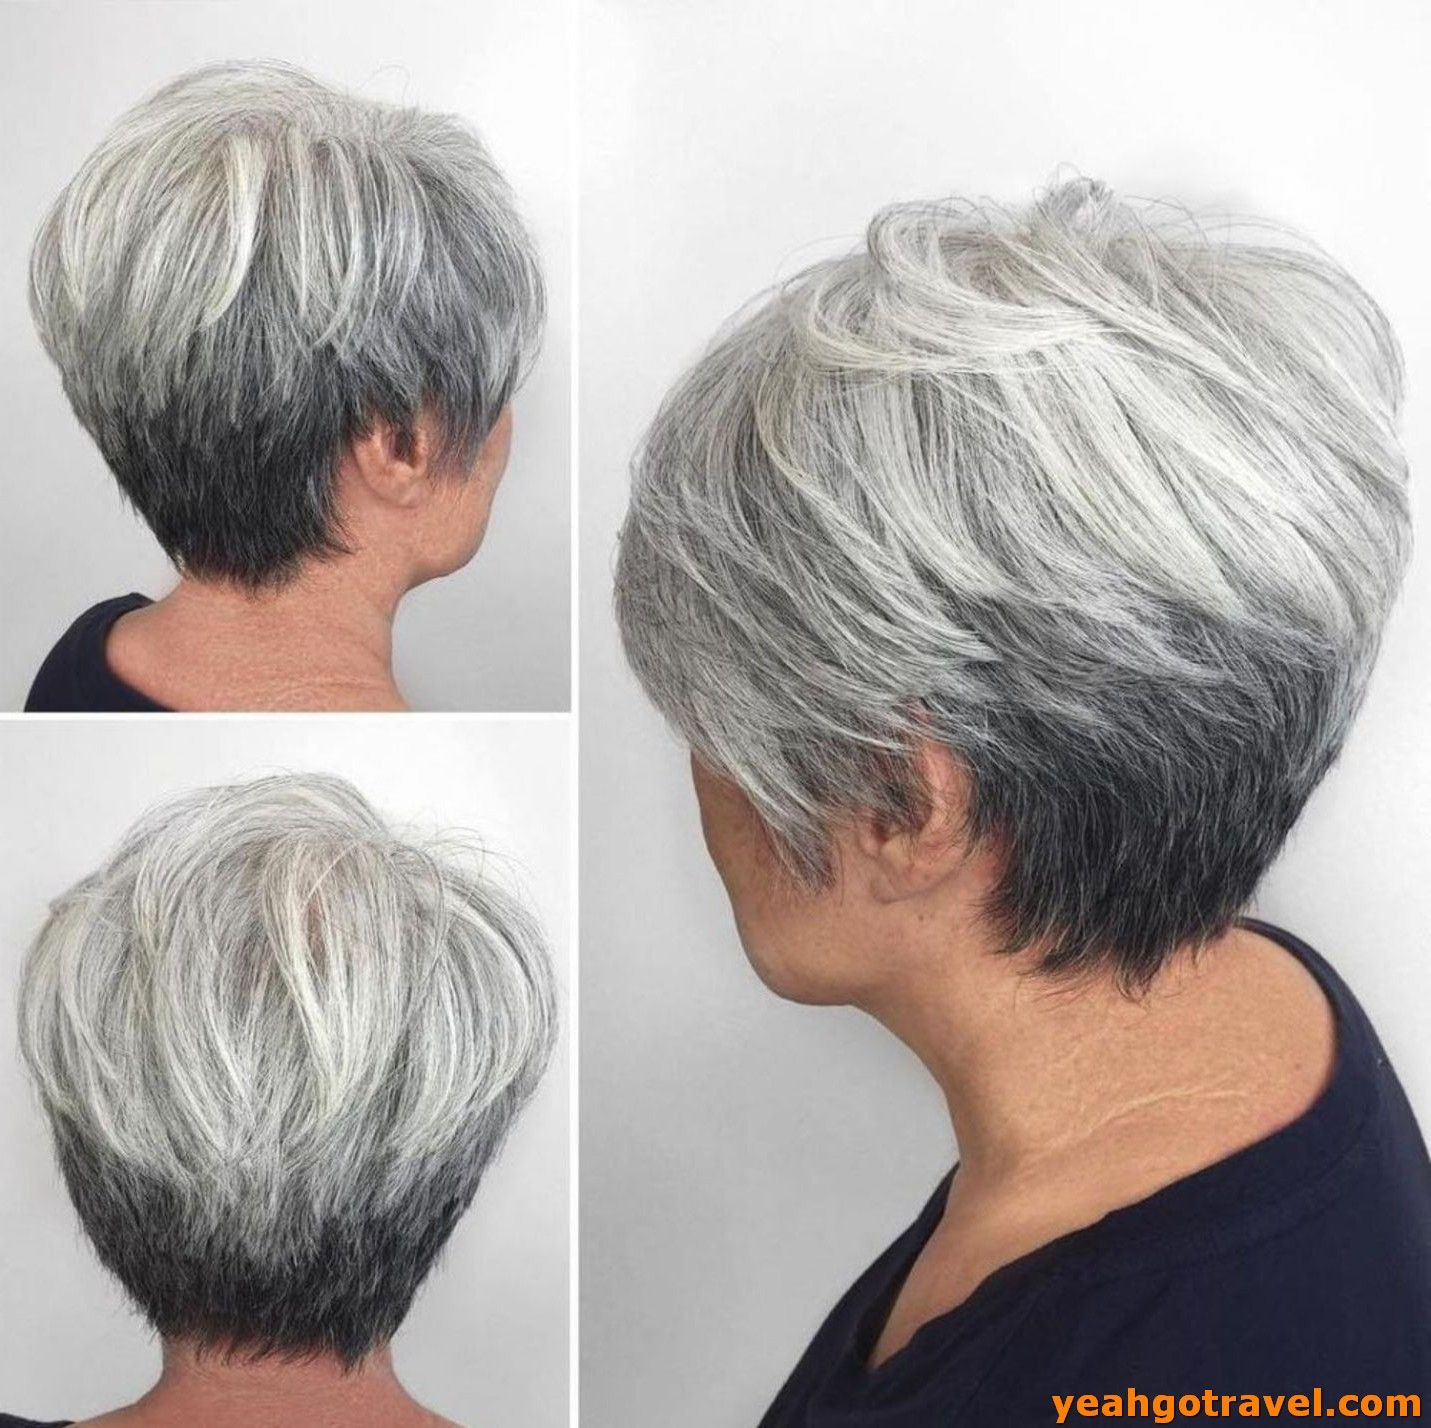 36 Most Coolest Short Grey Haircuts We Love Hair Styles For Women Over 50 Short Grey Hair Short Grey Haircuts